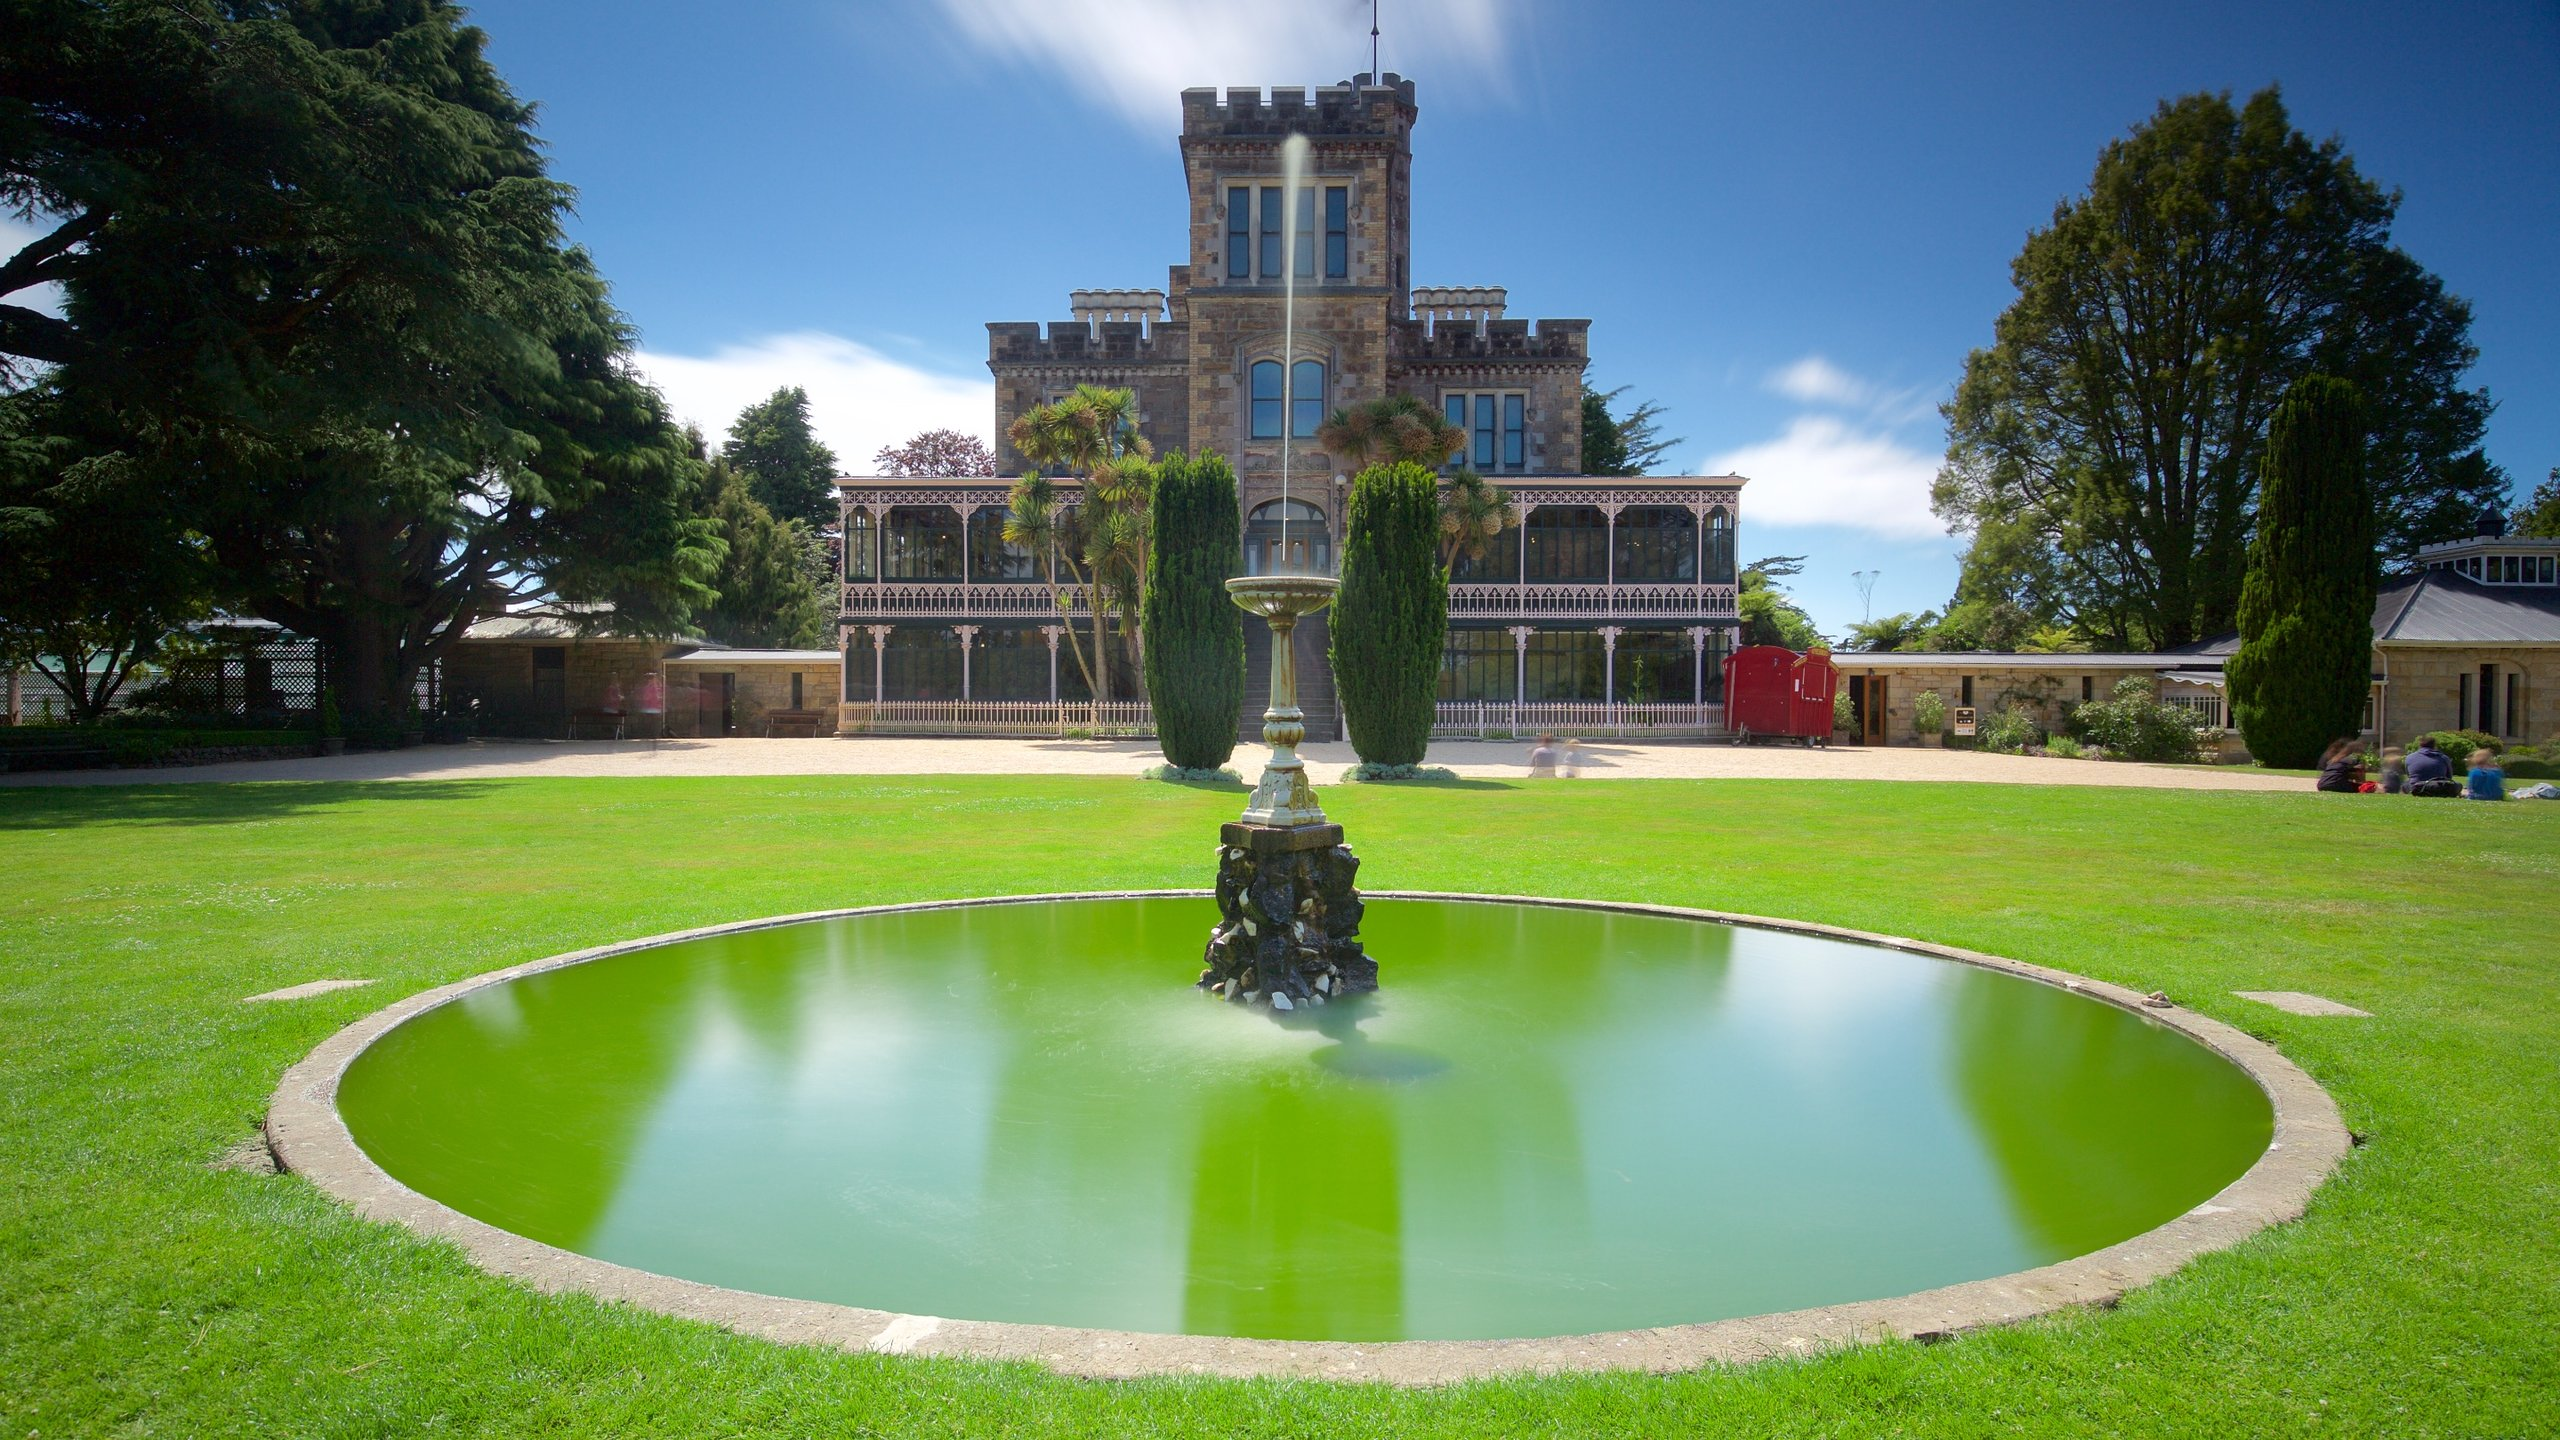 Discover tales of romance and tragedy, see rare Victorian furniture and take in stunning ocean vistas at New Zealand's only castle.